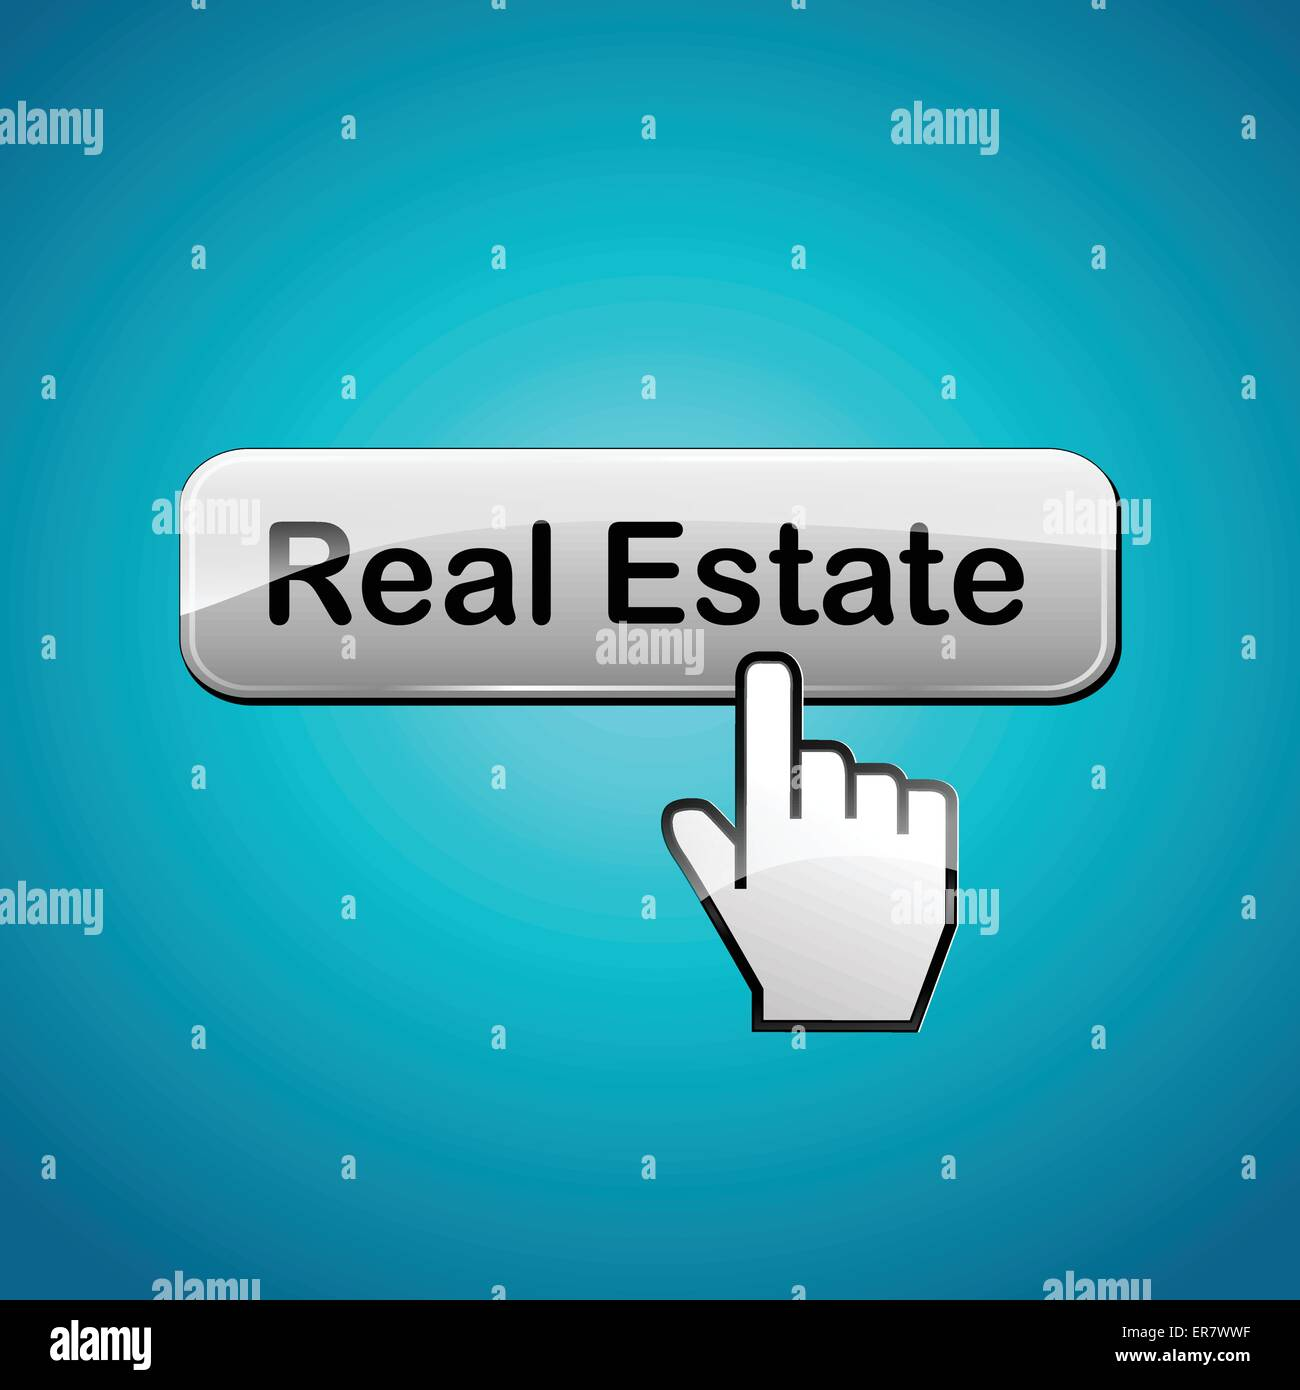 Vector illustration of real estate button concept background - Stock Vector